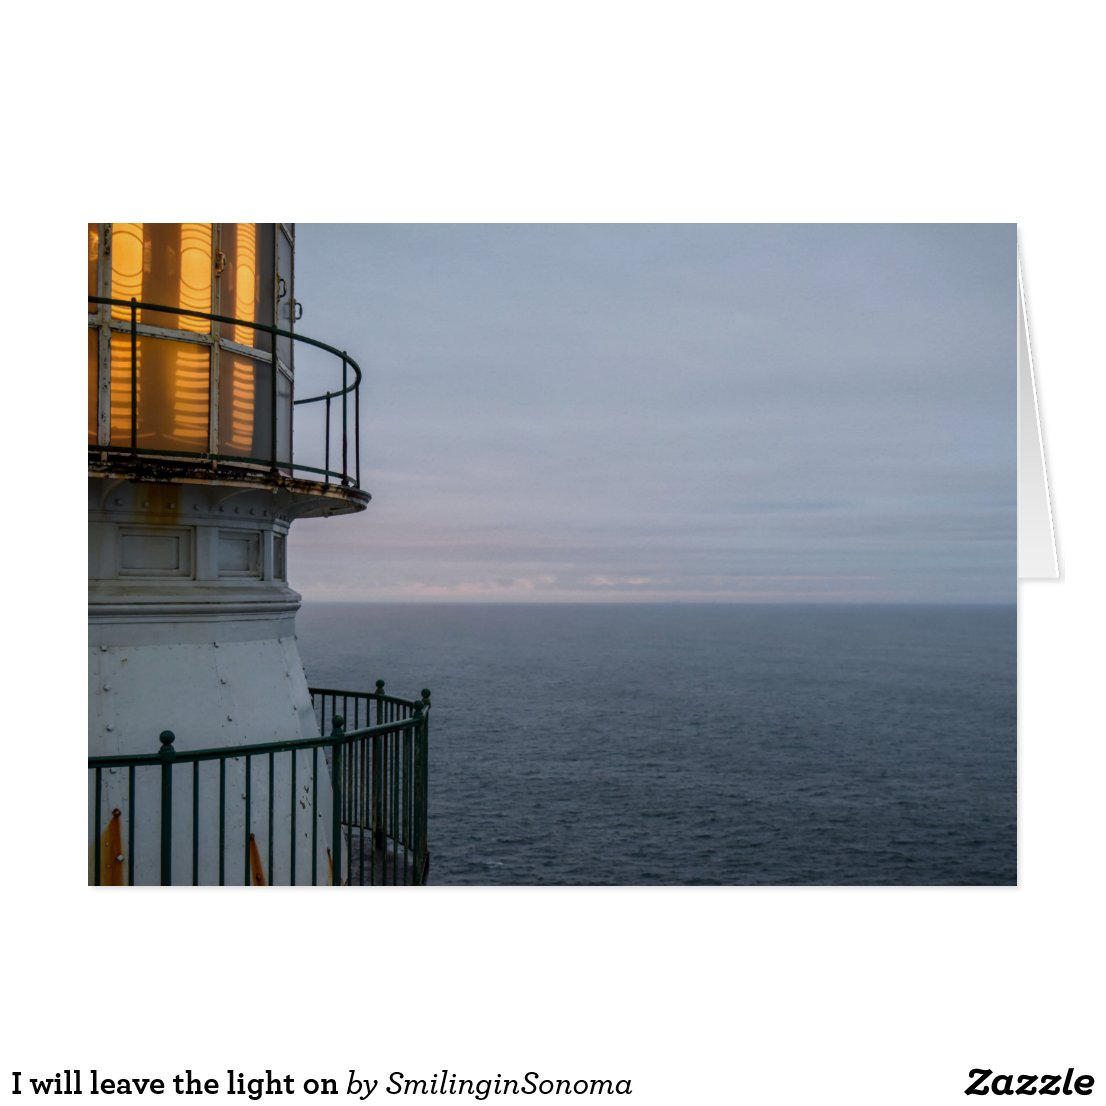 I will leave the light on